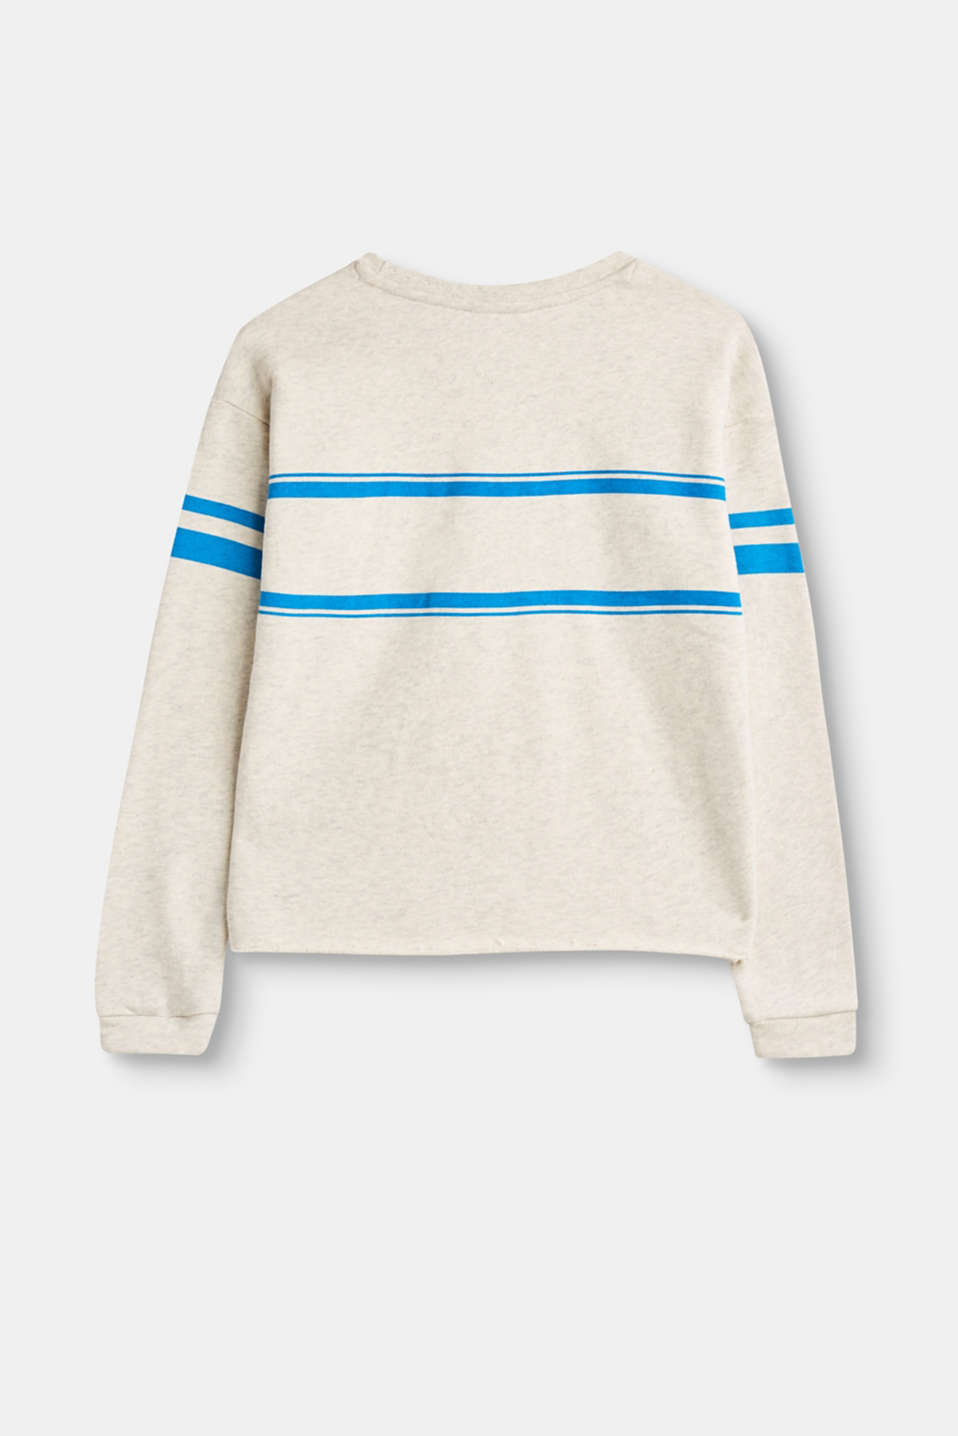 Statement-Sweatshirt aus 100% Baumwolle